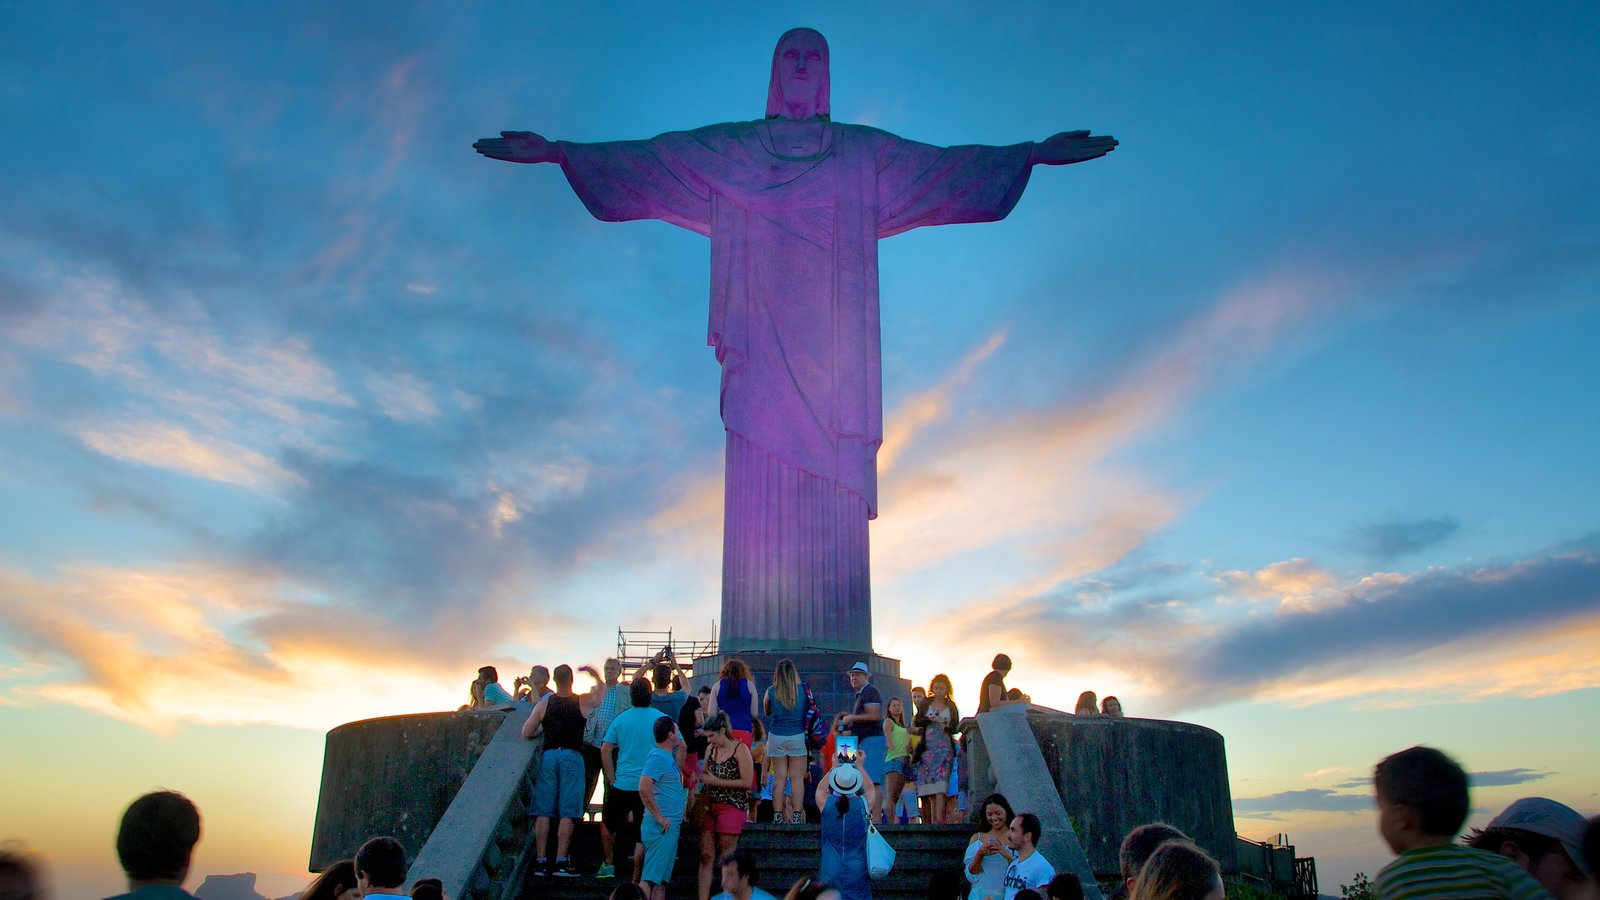 Corcovado showing religious aspects, a sunset and a statue or sculpture